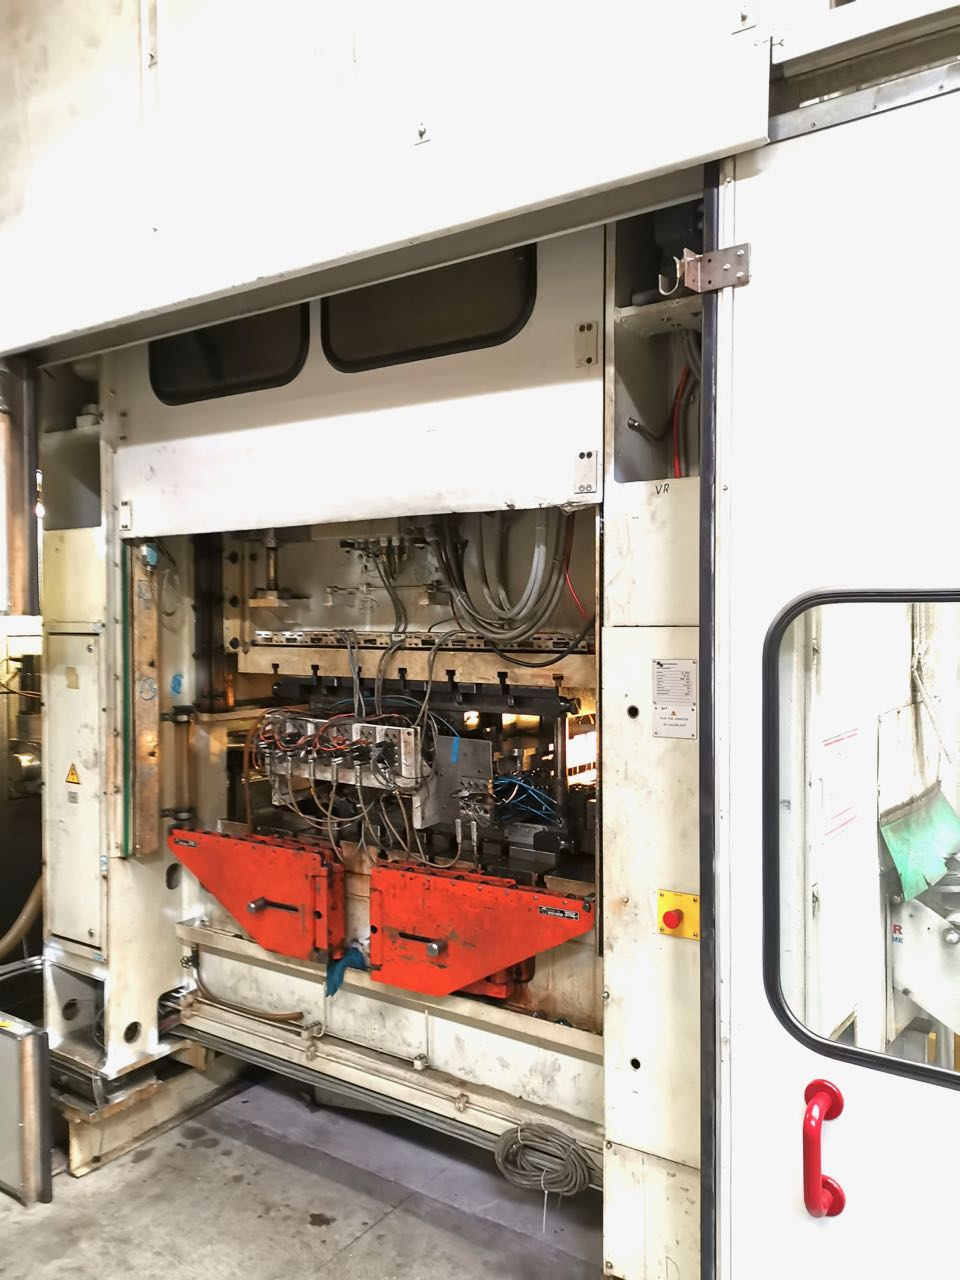 used  double-sided high speed press MÜLLER - WEINGARTEN HL 160.16